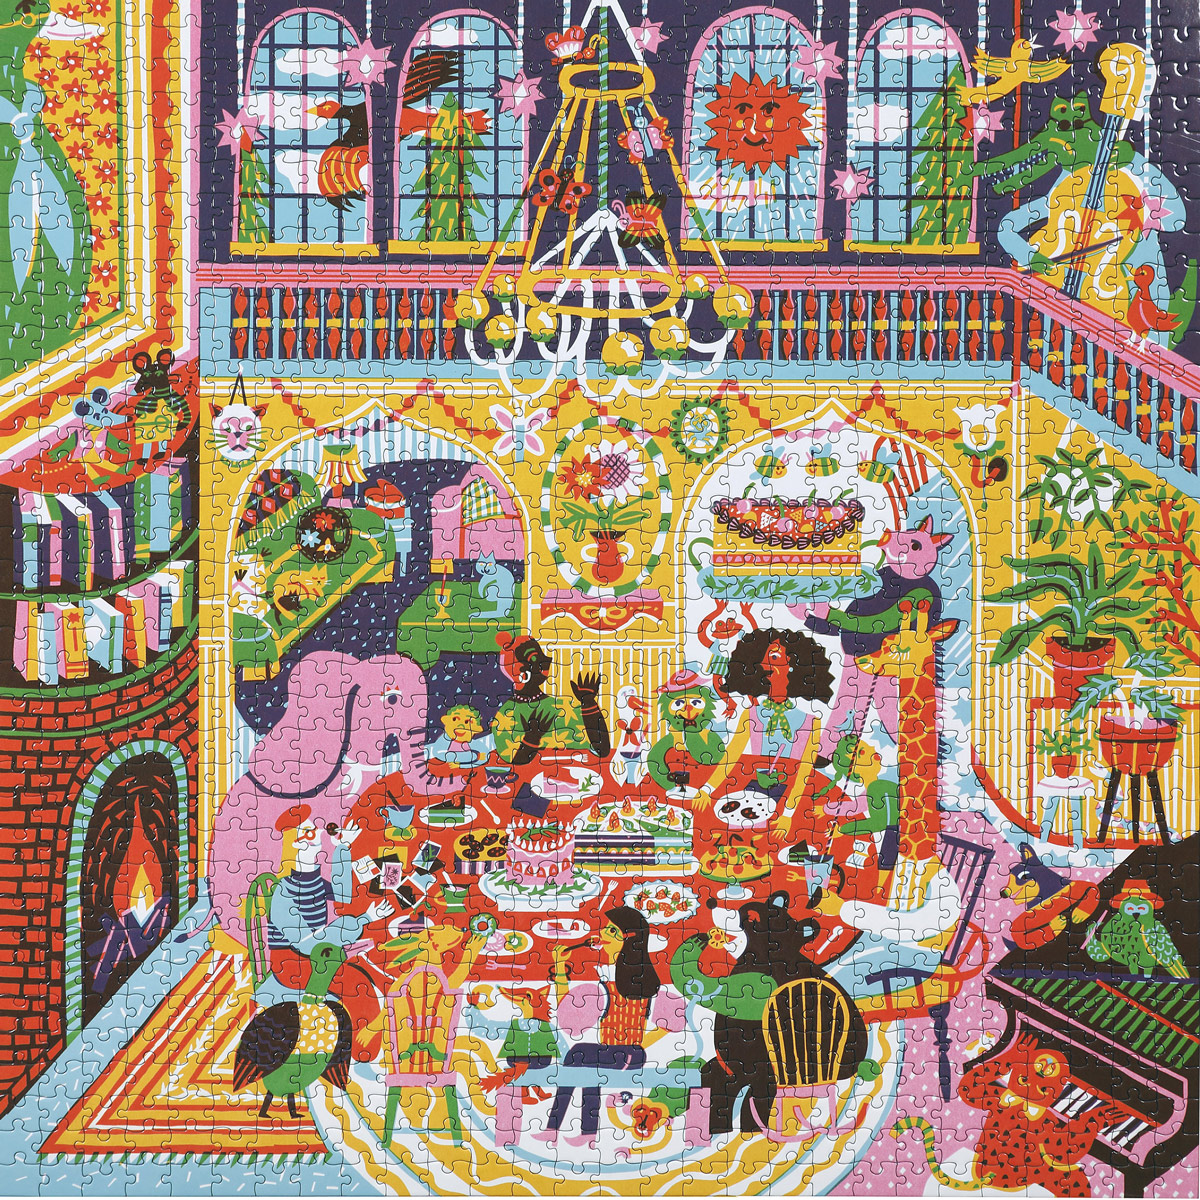 Family Dinner Night Food and Drink Jigsaw Puzzle